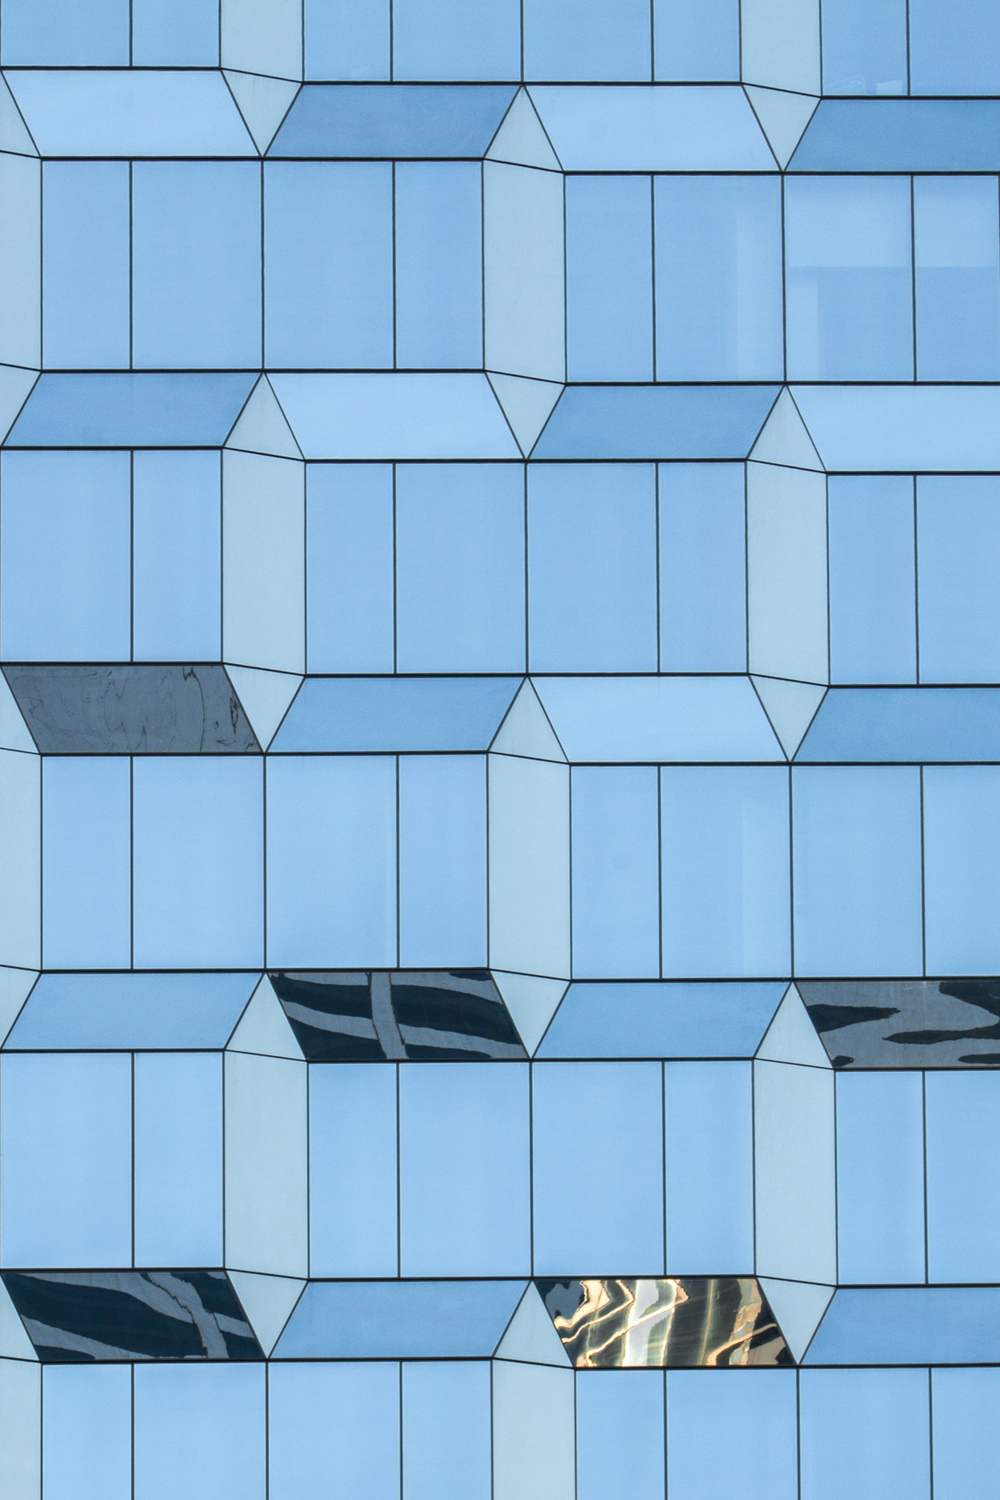 Architectural_abstractions_150725-9948_FINAL.jpg